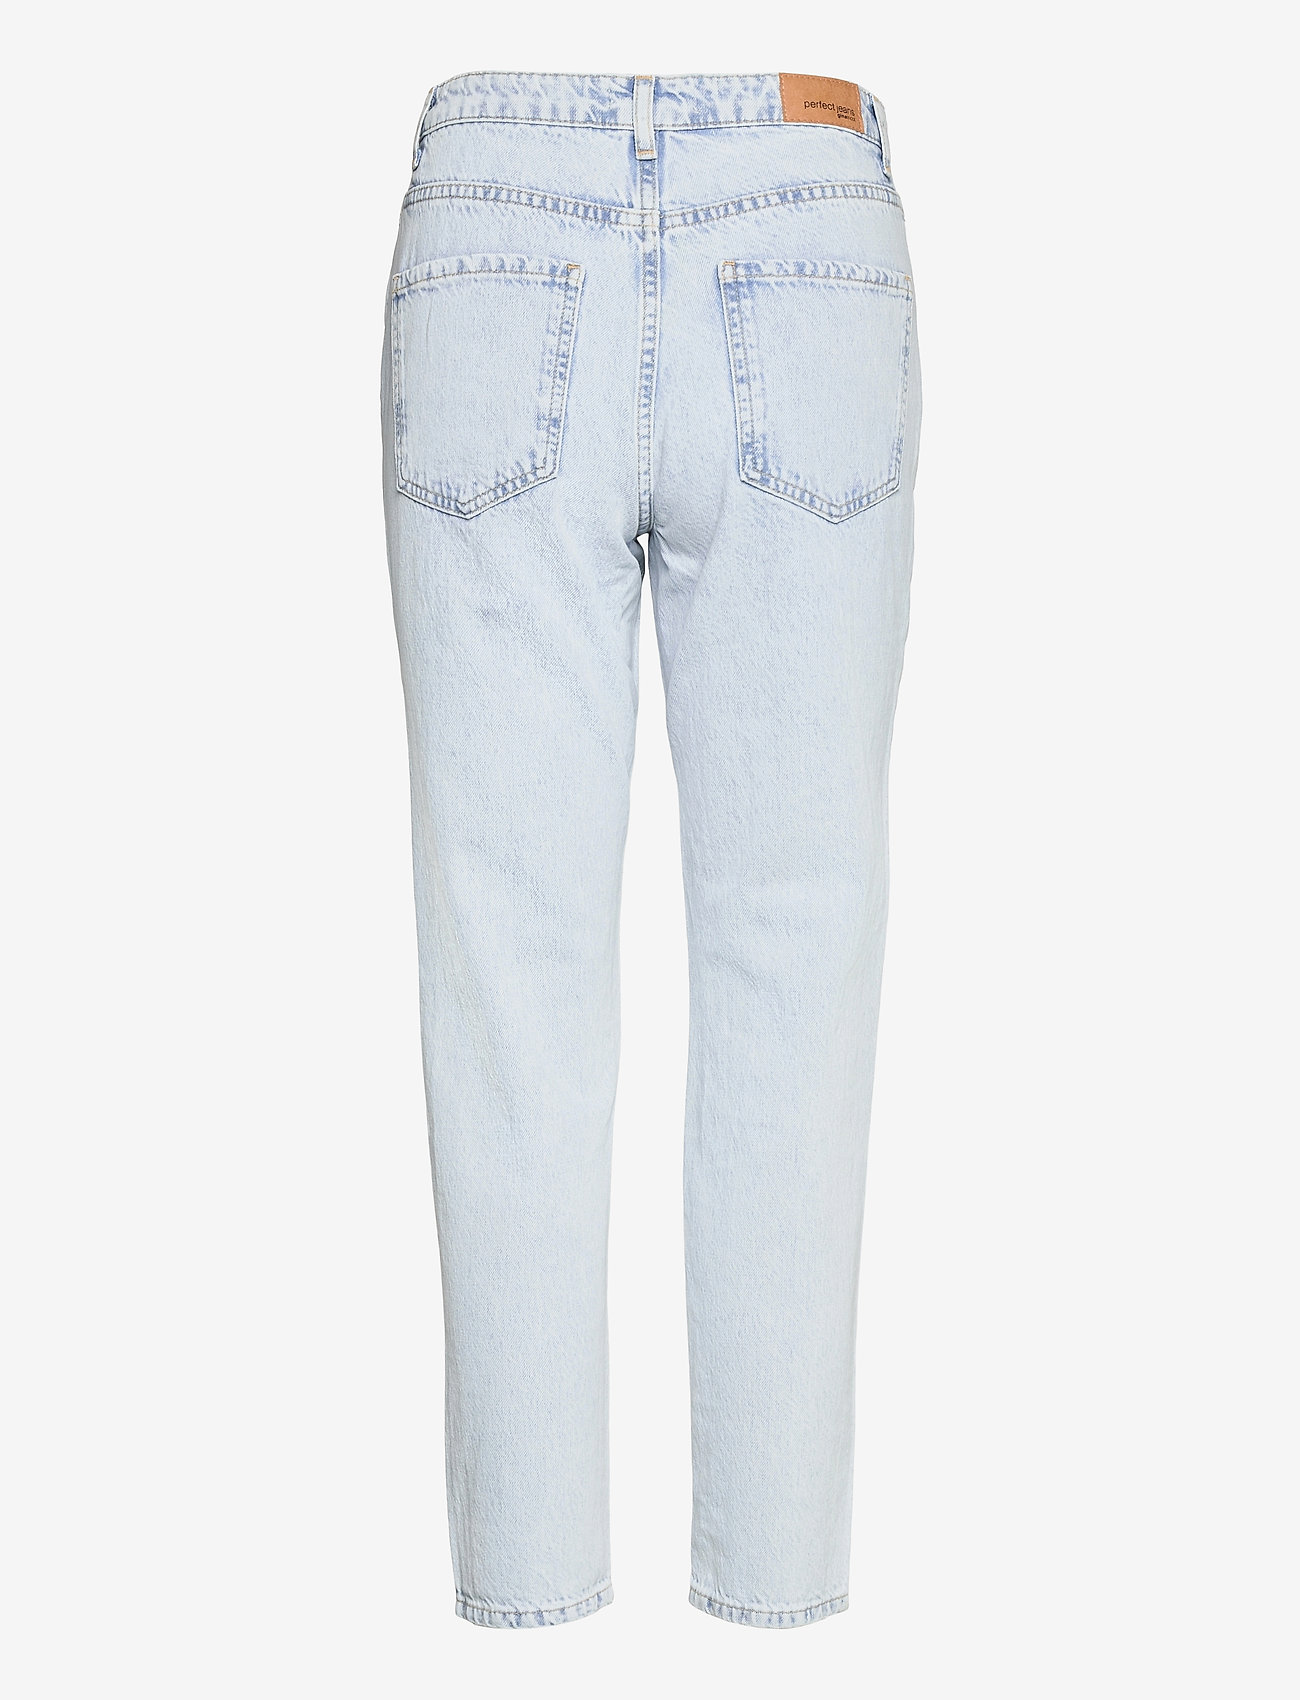 Gina Tricot - Dagny mom jeans - mom jeans - bleached blue (5029) - 1